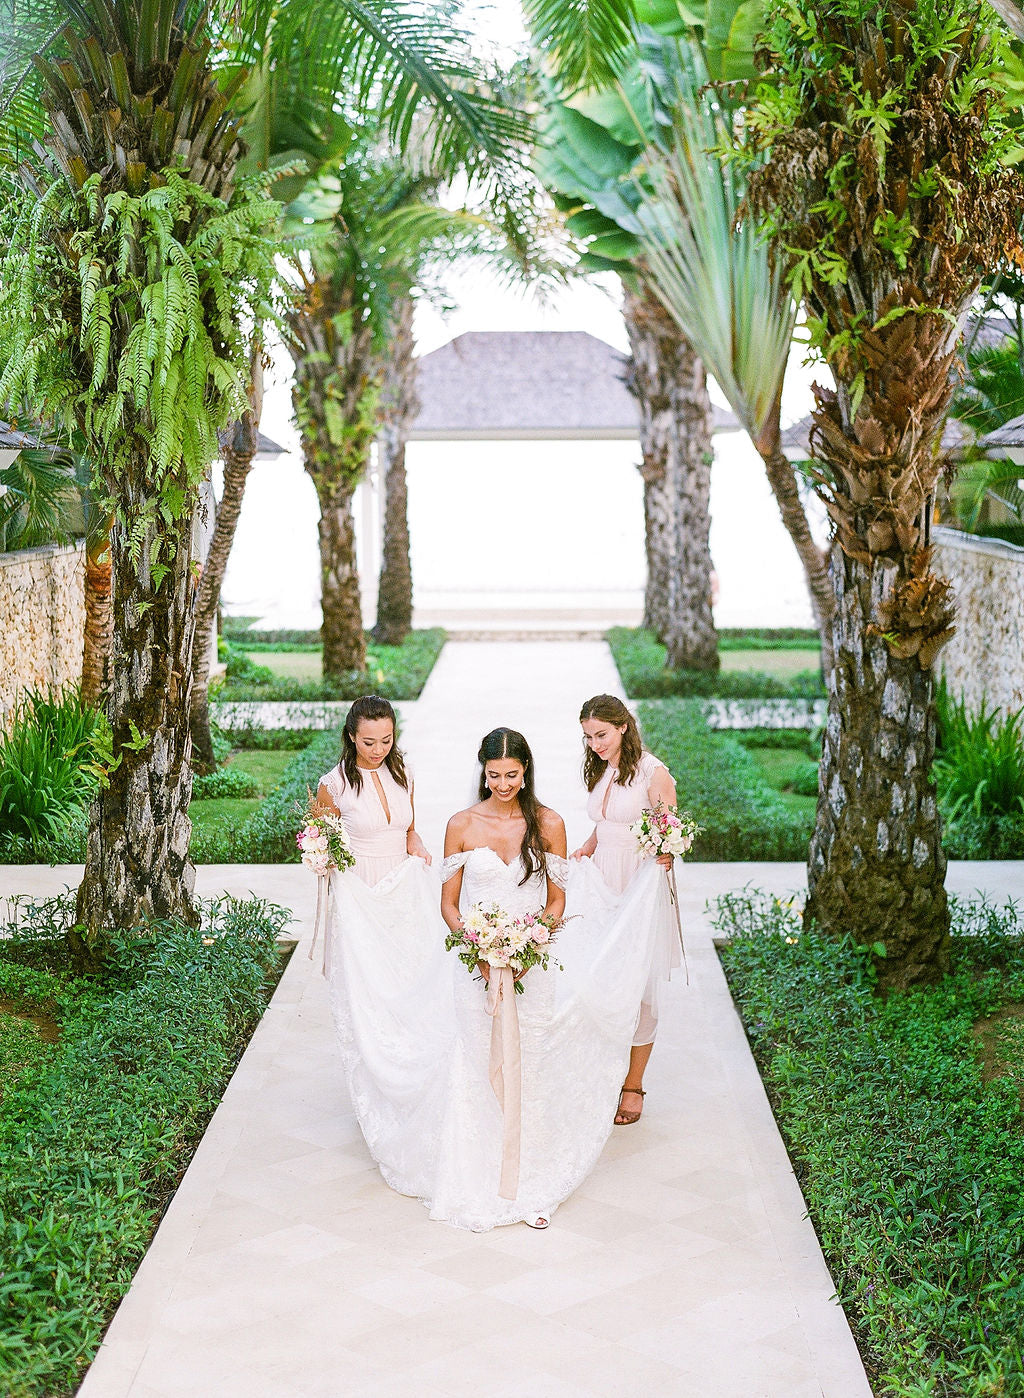 bella belle real brides sabby with her bridesmaids destination wedding bali